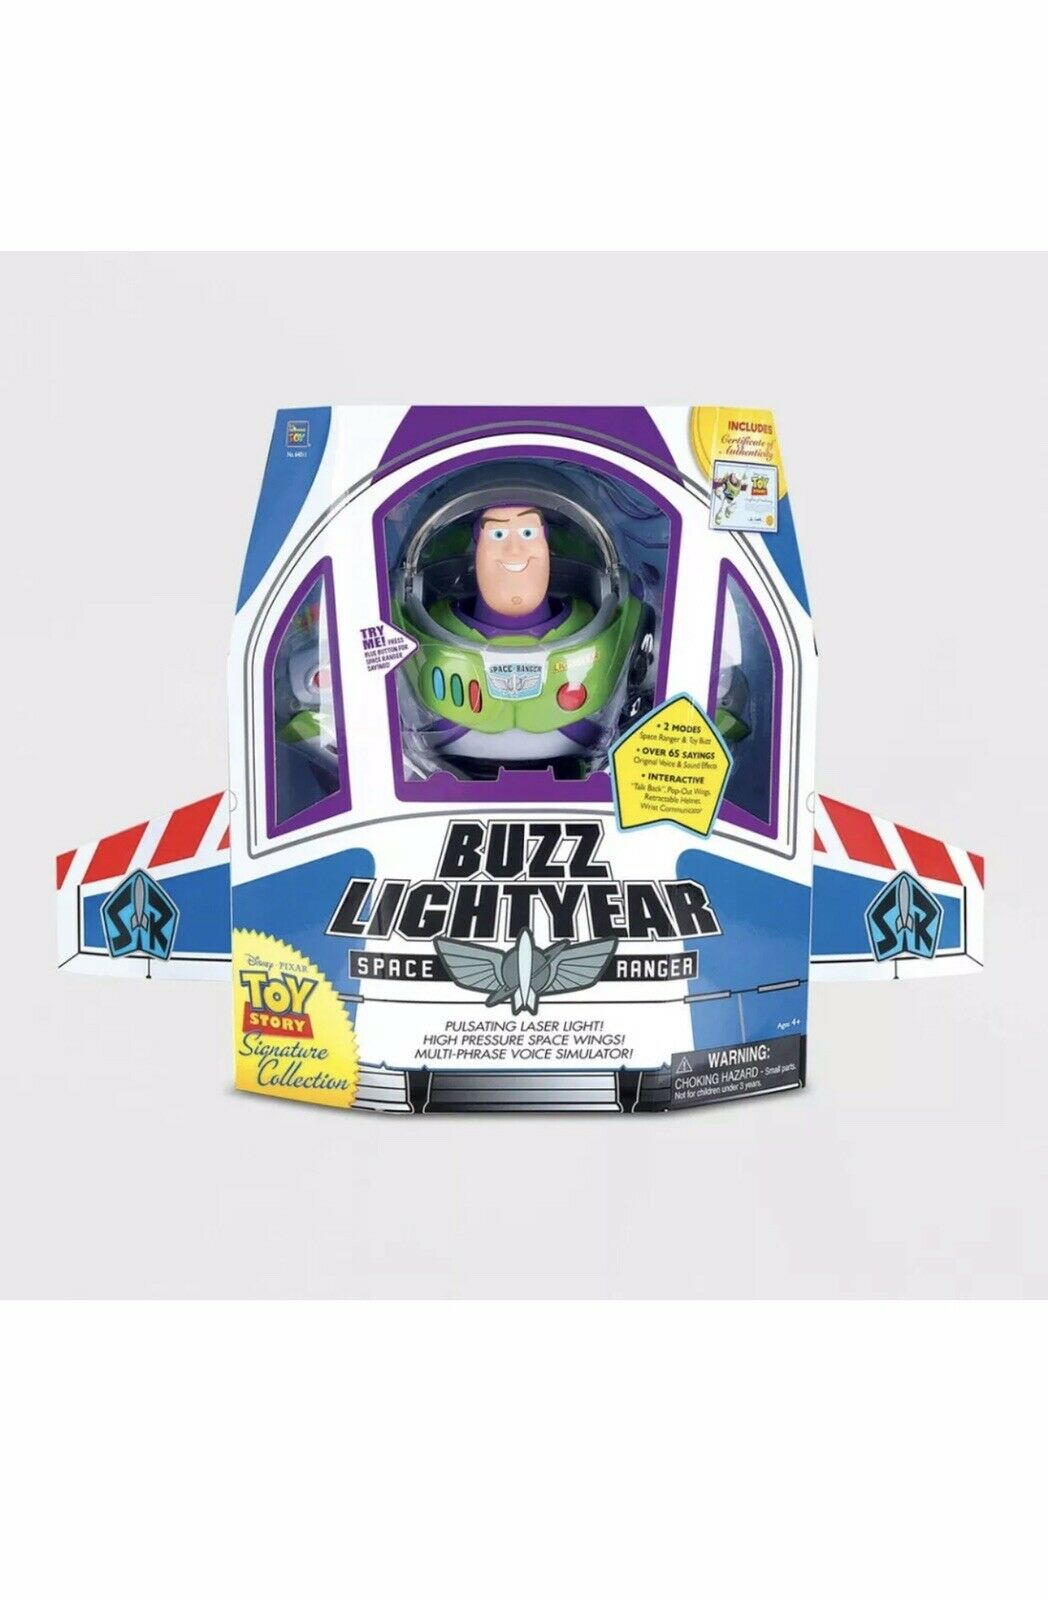 Toy Story Collection Buzz Lightyear Kid Toy Gift